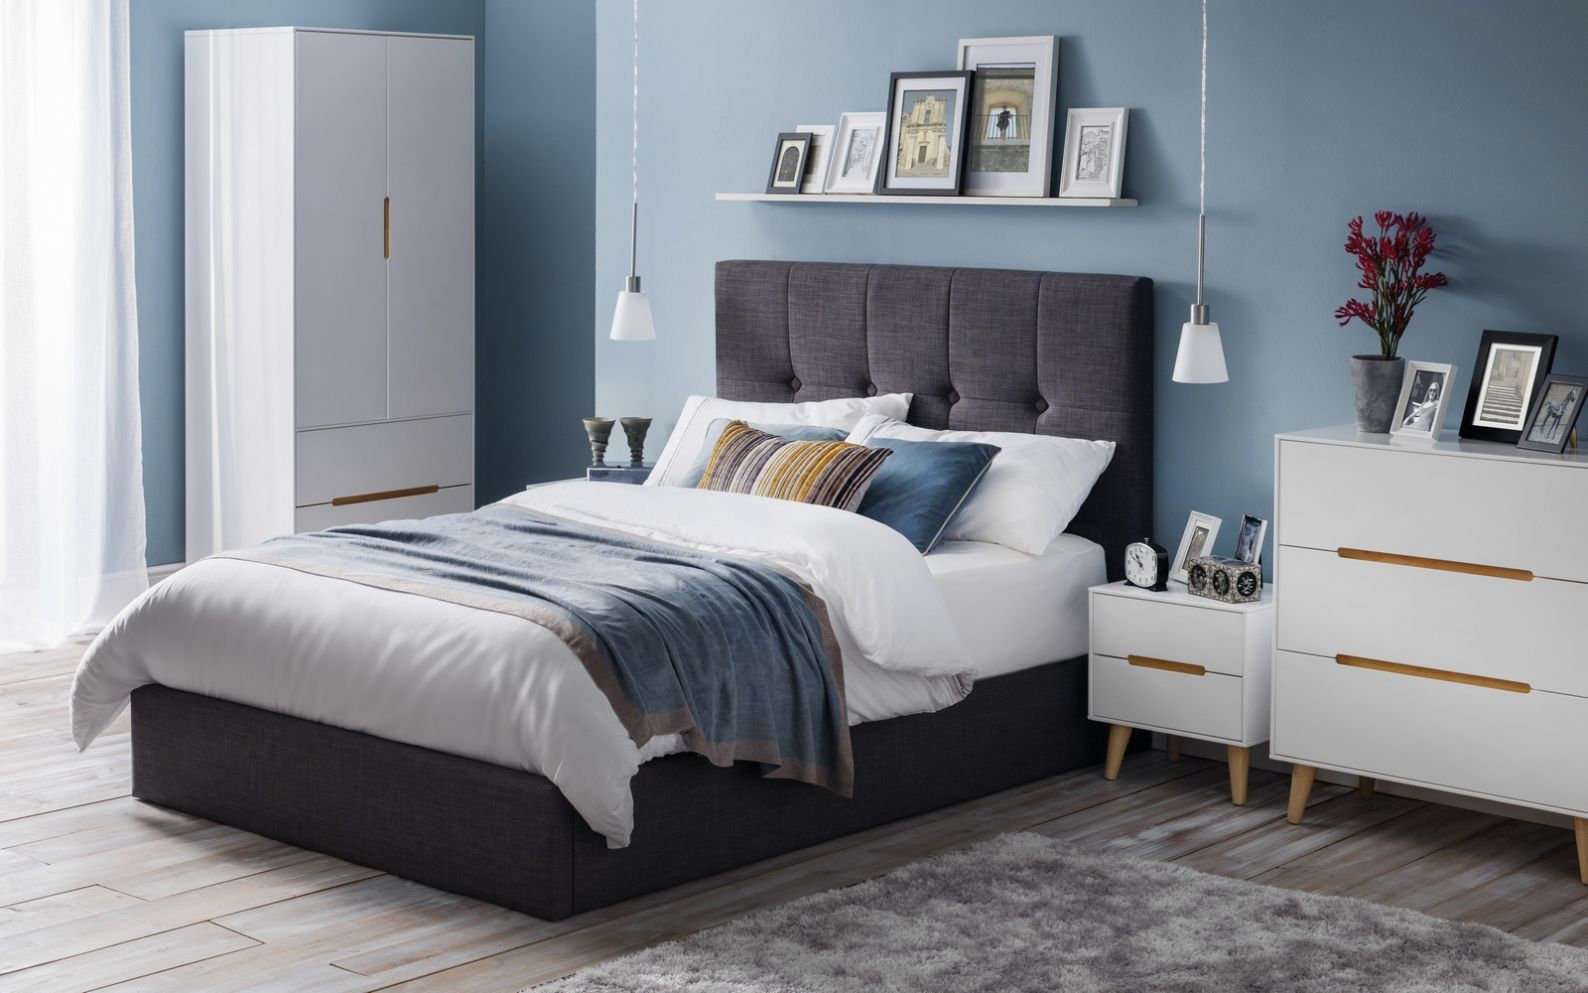 Alicia White Bedroom Range